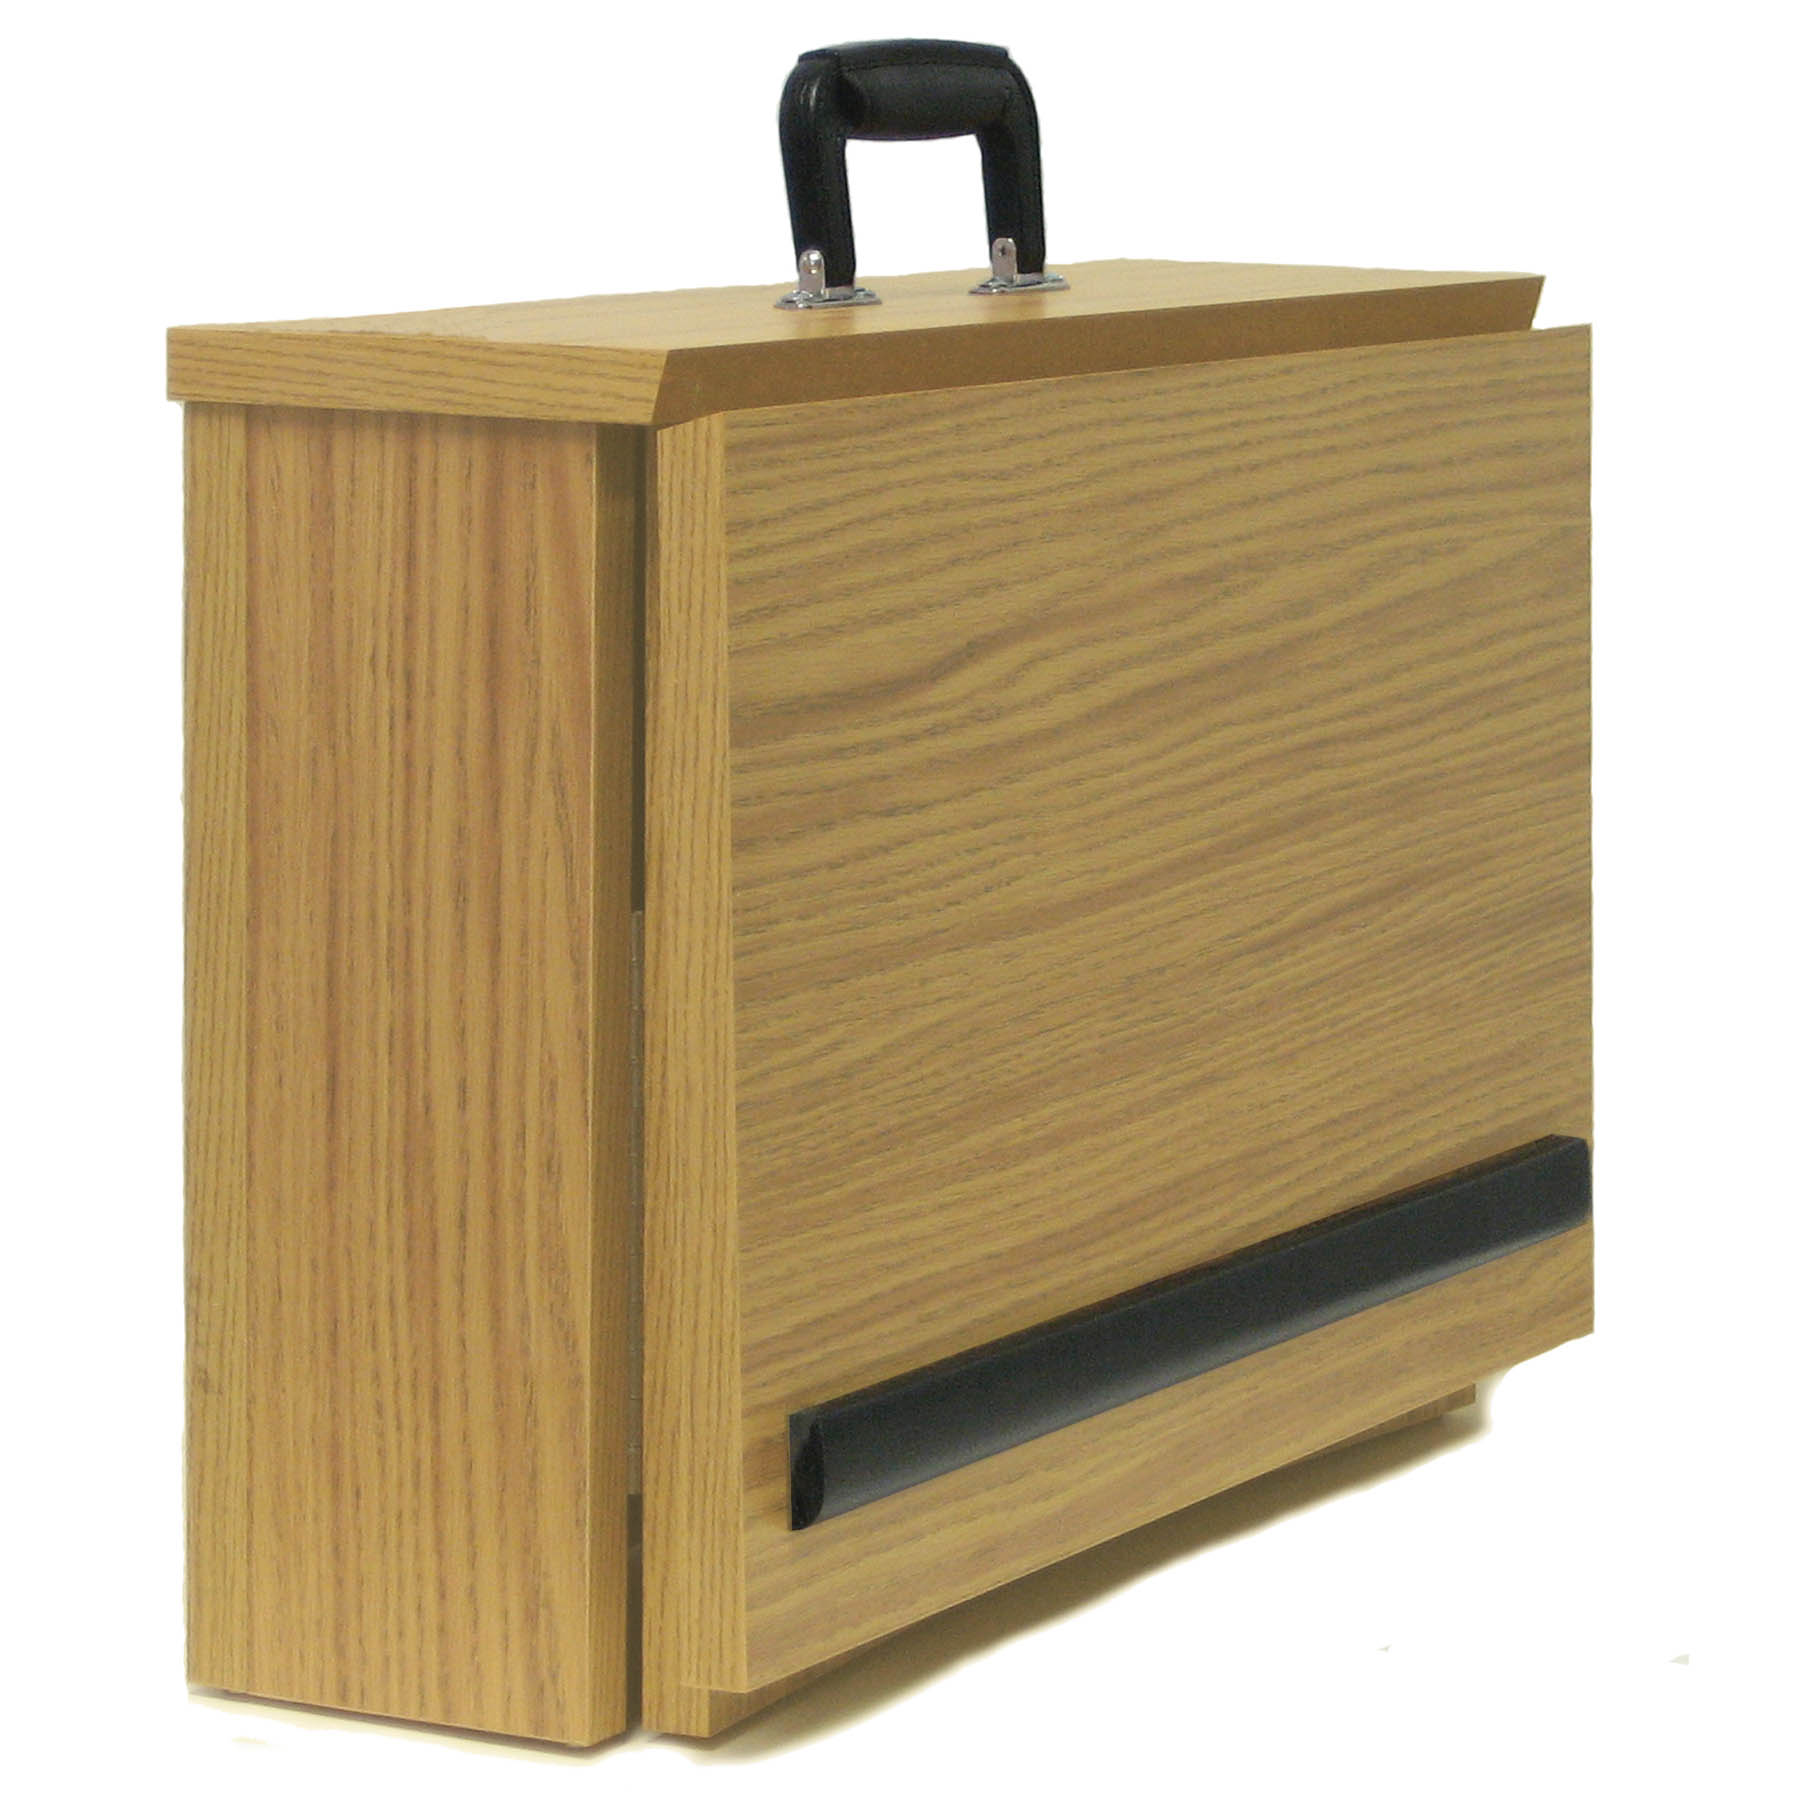 Lectern And Podium Ez Speak Folding Tabletop With Easy Grip Handle Oak Finish W272